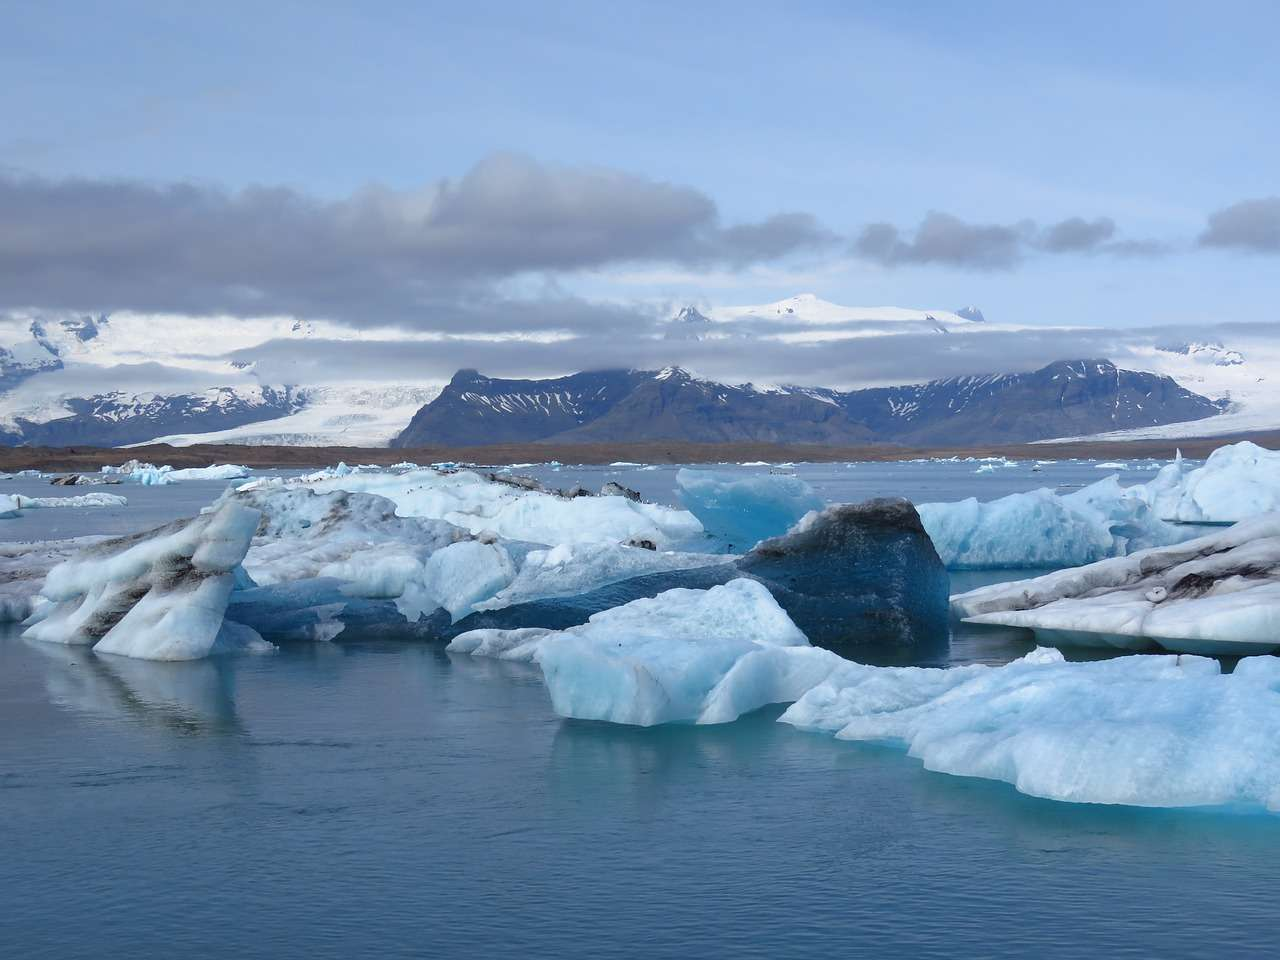 Vatnajökull Glacier Iceland - 9 Most Amazing Glaciers in the World Worth Visiting